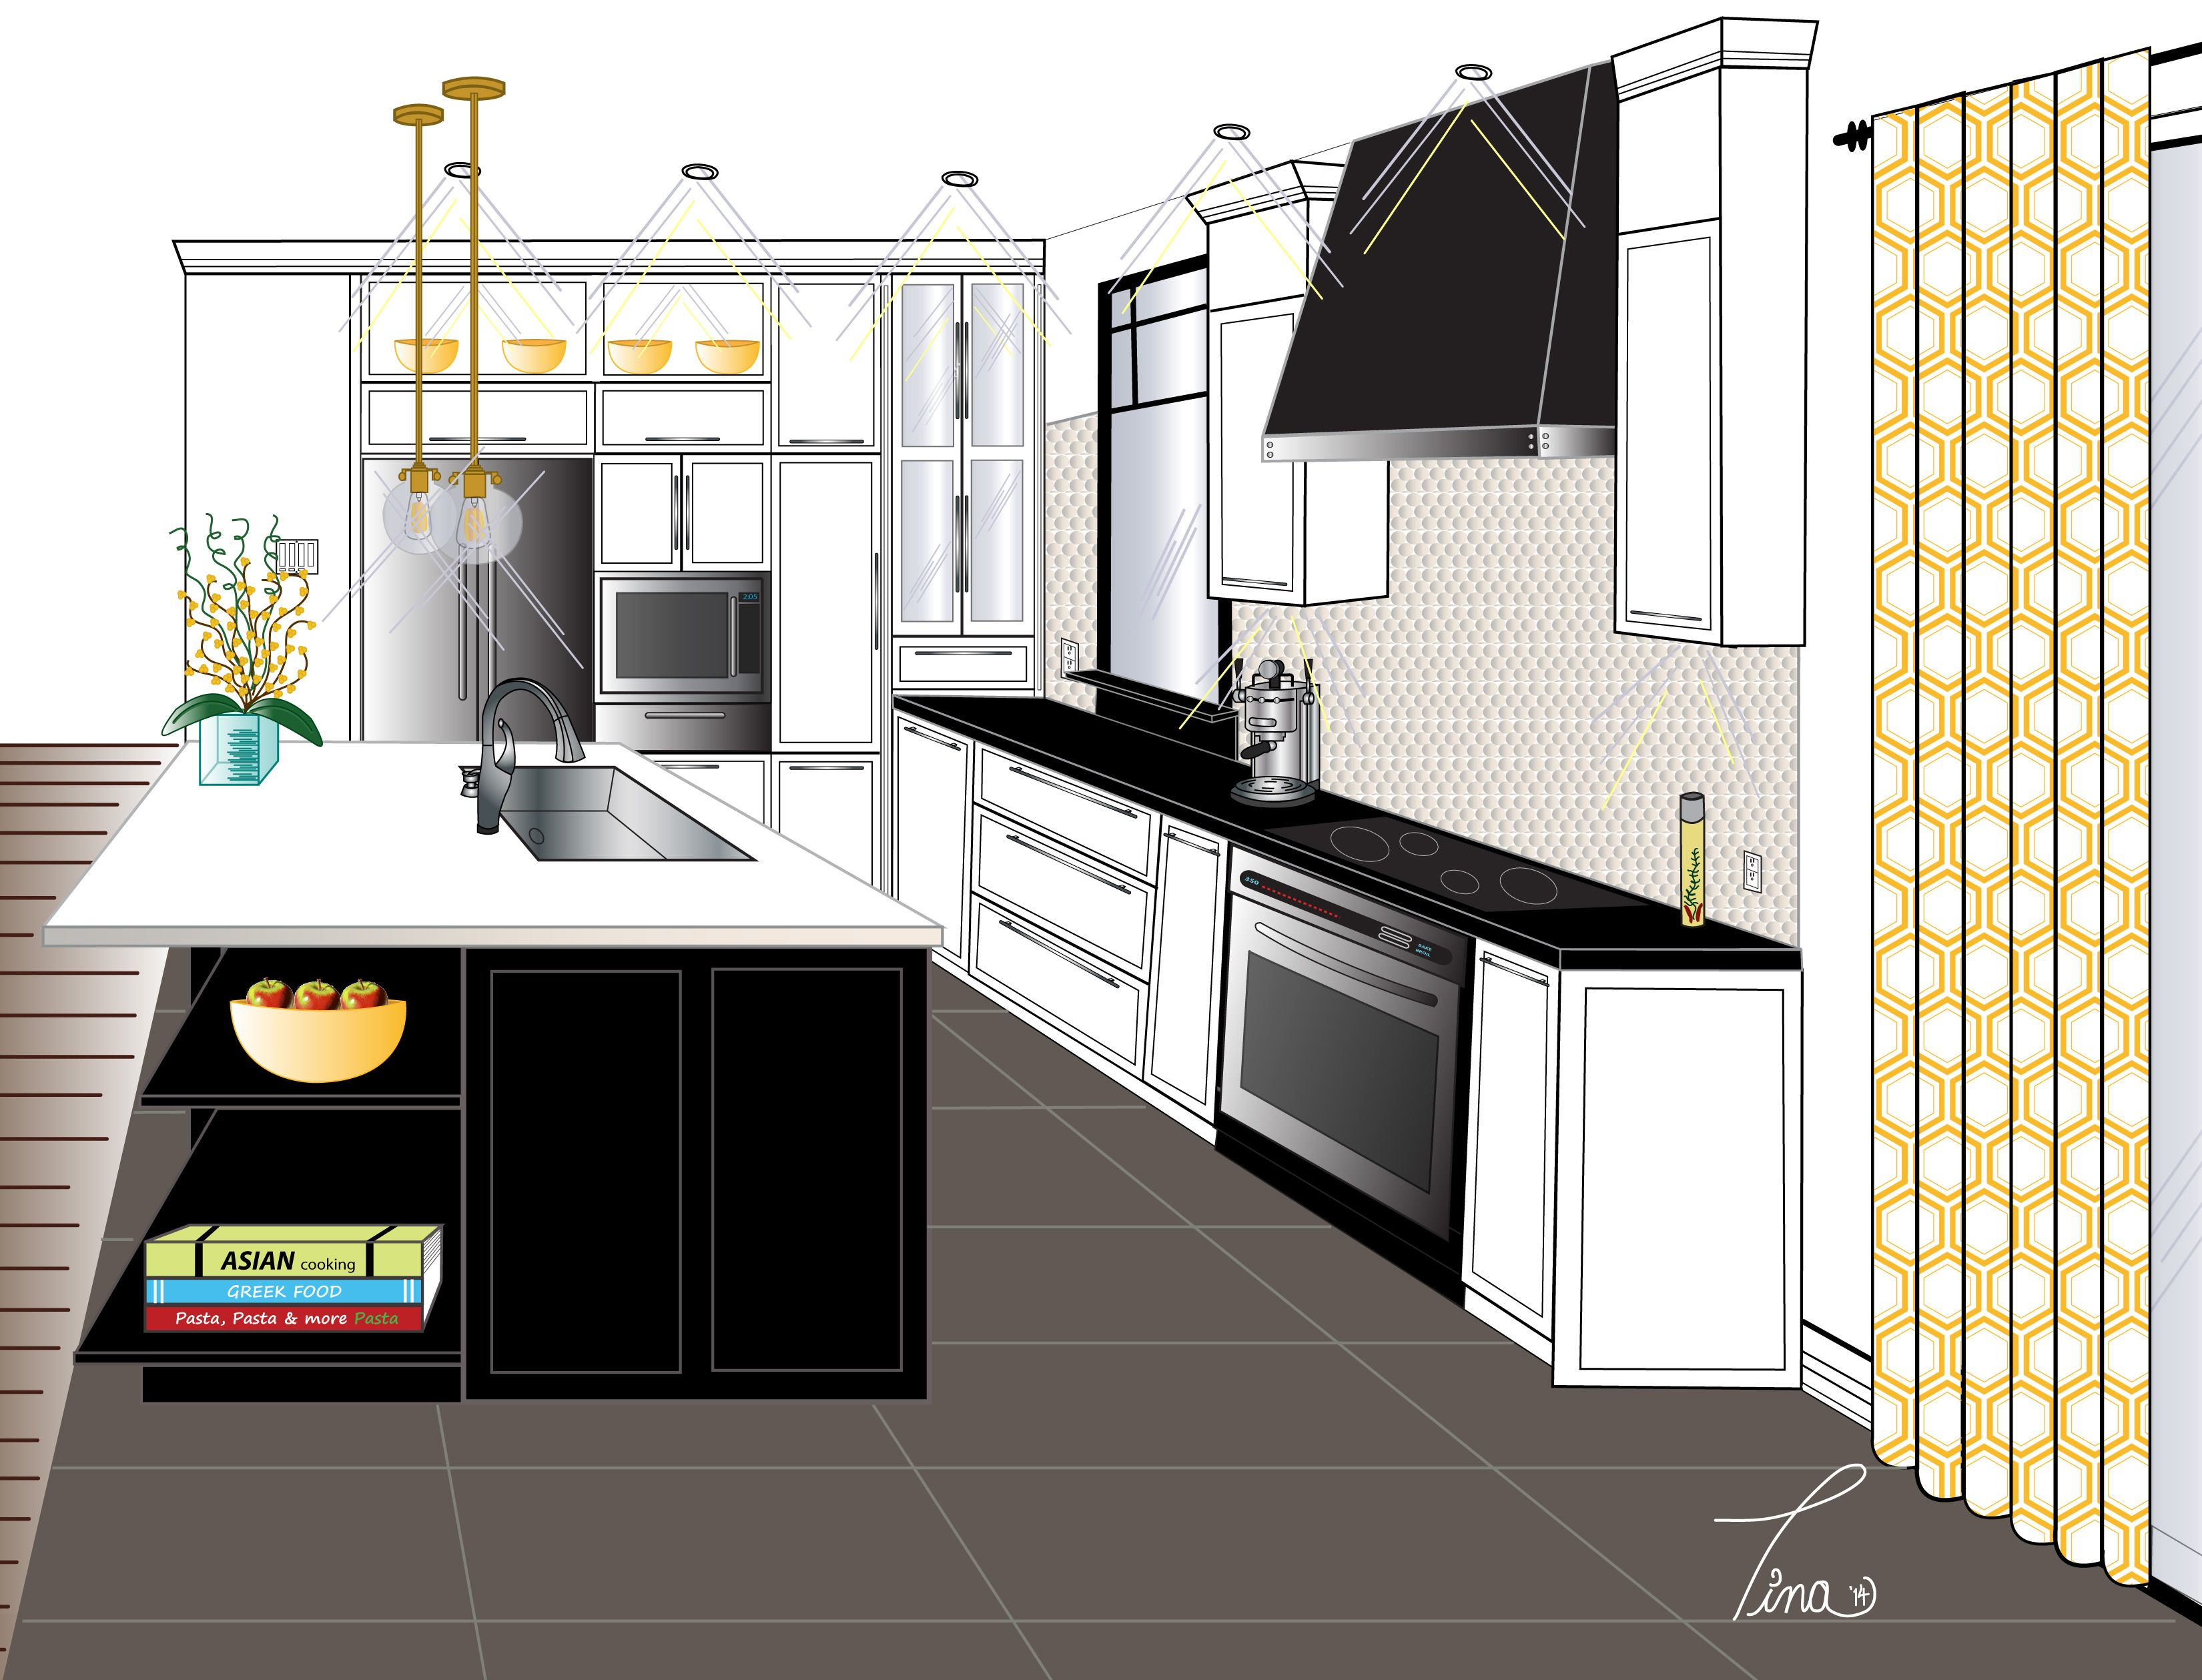 2 Point Perspective Contemporary Kitchen Final Rendering Perspective Drawing Pinterest